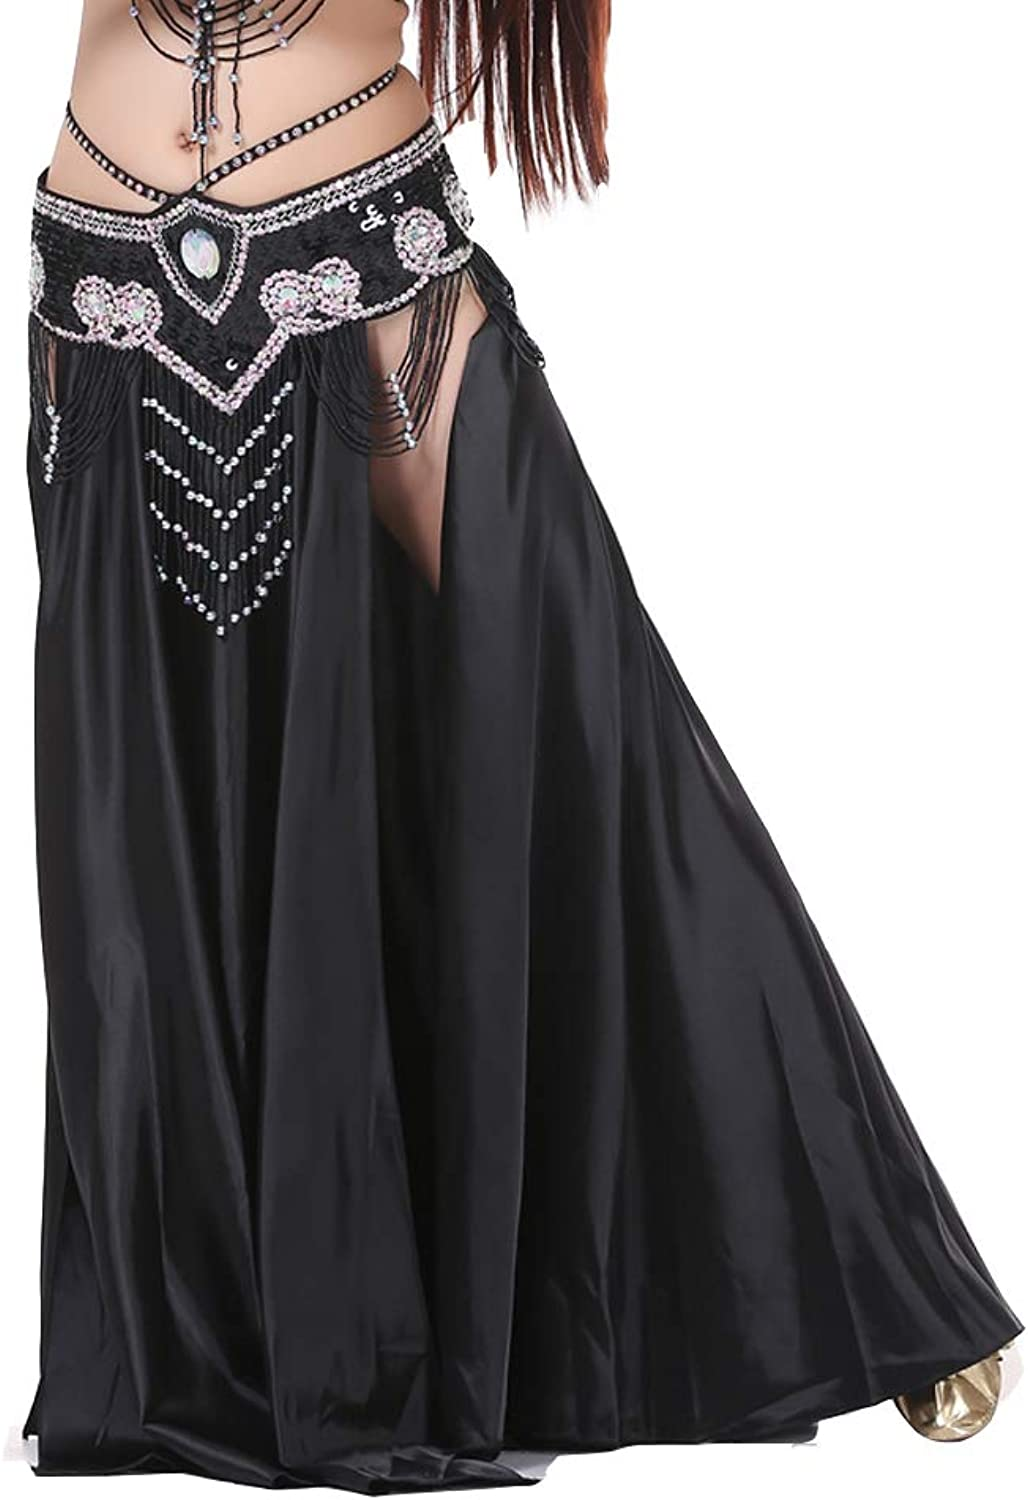 SHOWYOU 37.8 (96cm) Professional and Sexy Dress Double Forktailed Double Split Satin Belly Dance Skirt